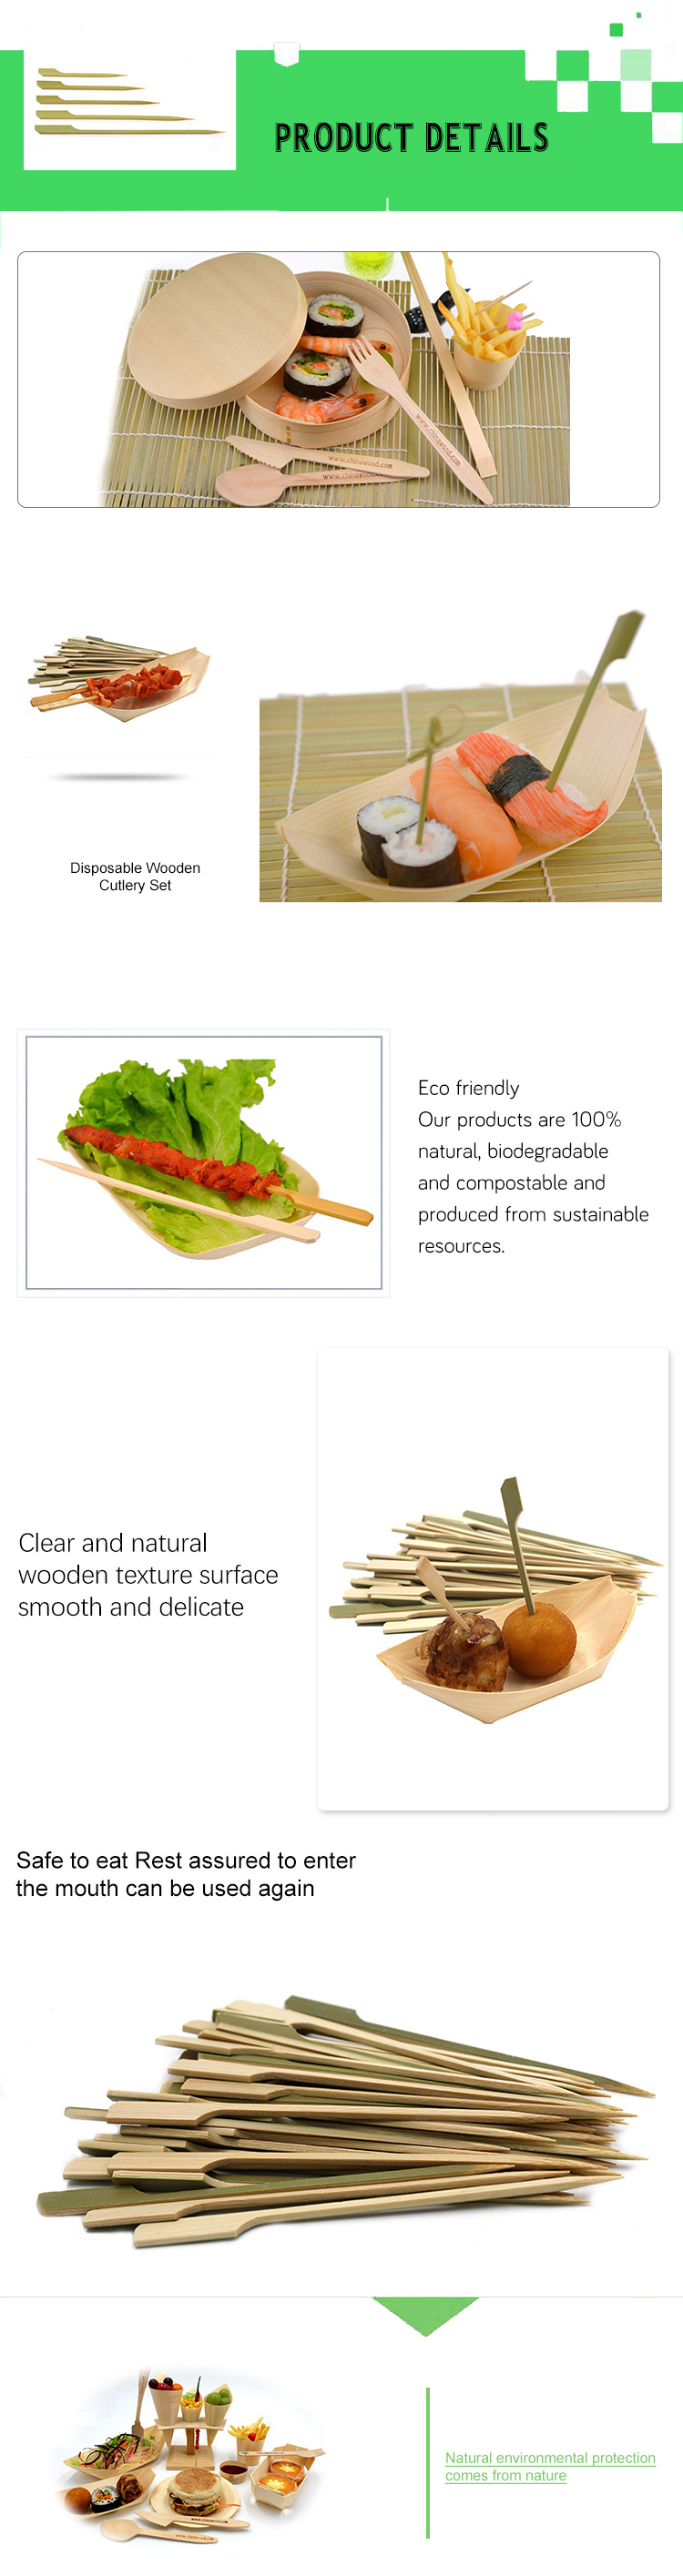 Best bamboo barbecue Teppo Gushi-gun skewers sticks